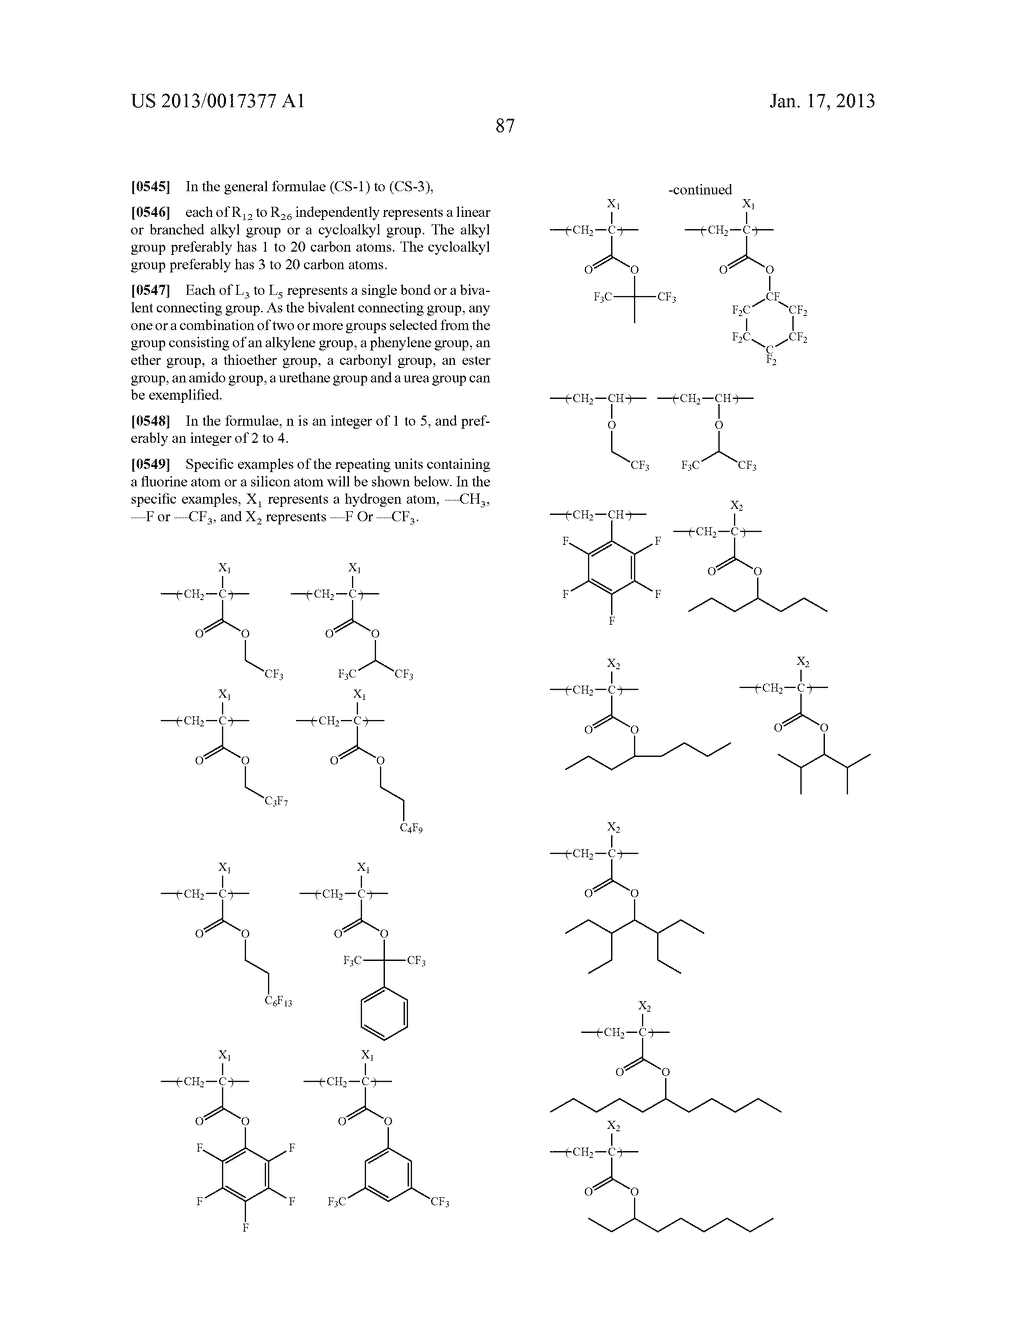 ACTINIC-RAY- OR RADIATION-SENSITIVE RESIN COMPOSITION AND METHOD OF     FORMING PATTERN USING THE SAMEAANM Kataoka; ShoheiAACI ShizuokaAACO JPAAGP Kataoka; Shohei Shizuoka JPAANM Iwato; KaoruAACI ShizuokaAACO JPAAGP Iwato; Kaoru Shizuoka JPAANM Kamimura; SouAACI ShizuokaAACO JPAAGP Kamimura; Sou Shizuoka JPAANM Tsuchihashi; ToruAACI ShizuokaAACO JPAAGP Tsuchihashi; Toru Shizuoka JPAANM Enomoto; YuichiroAACI ShizuokaAACO JPAAGP Enomoto; Yuichiro Shizuoka JPAANM Fujii; KanaAACI ShizuokaAACO JPAAGP Fujii; Kana Shizuoka JPAANM Mizutani; KazuyoshiAACI ShizuokaAACO JPAAGP Mizutani; Kazuyoshi Shizuoka JPAANM Tarutani; ShinjiAACI ShizuokaAACO JPAAGP Tarutani; Shinji Shizuoka JPAANM Kato; KeitaAACI ShizuokaAACO JPAAGP Kato; Keita Shizuoka JP - diagram, schematic, and image 88